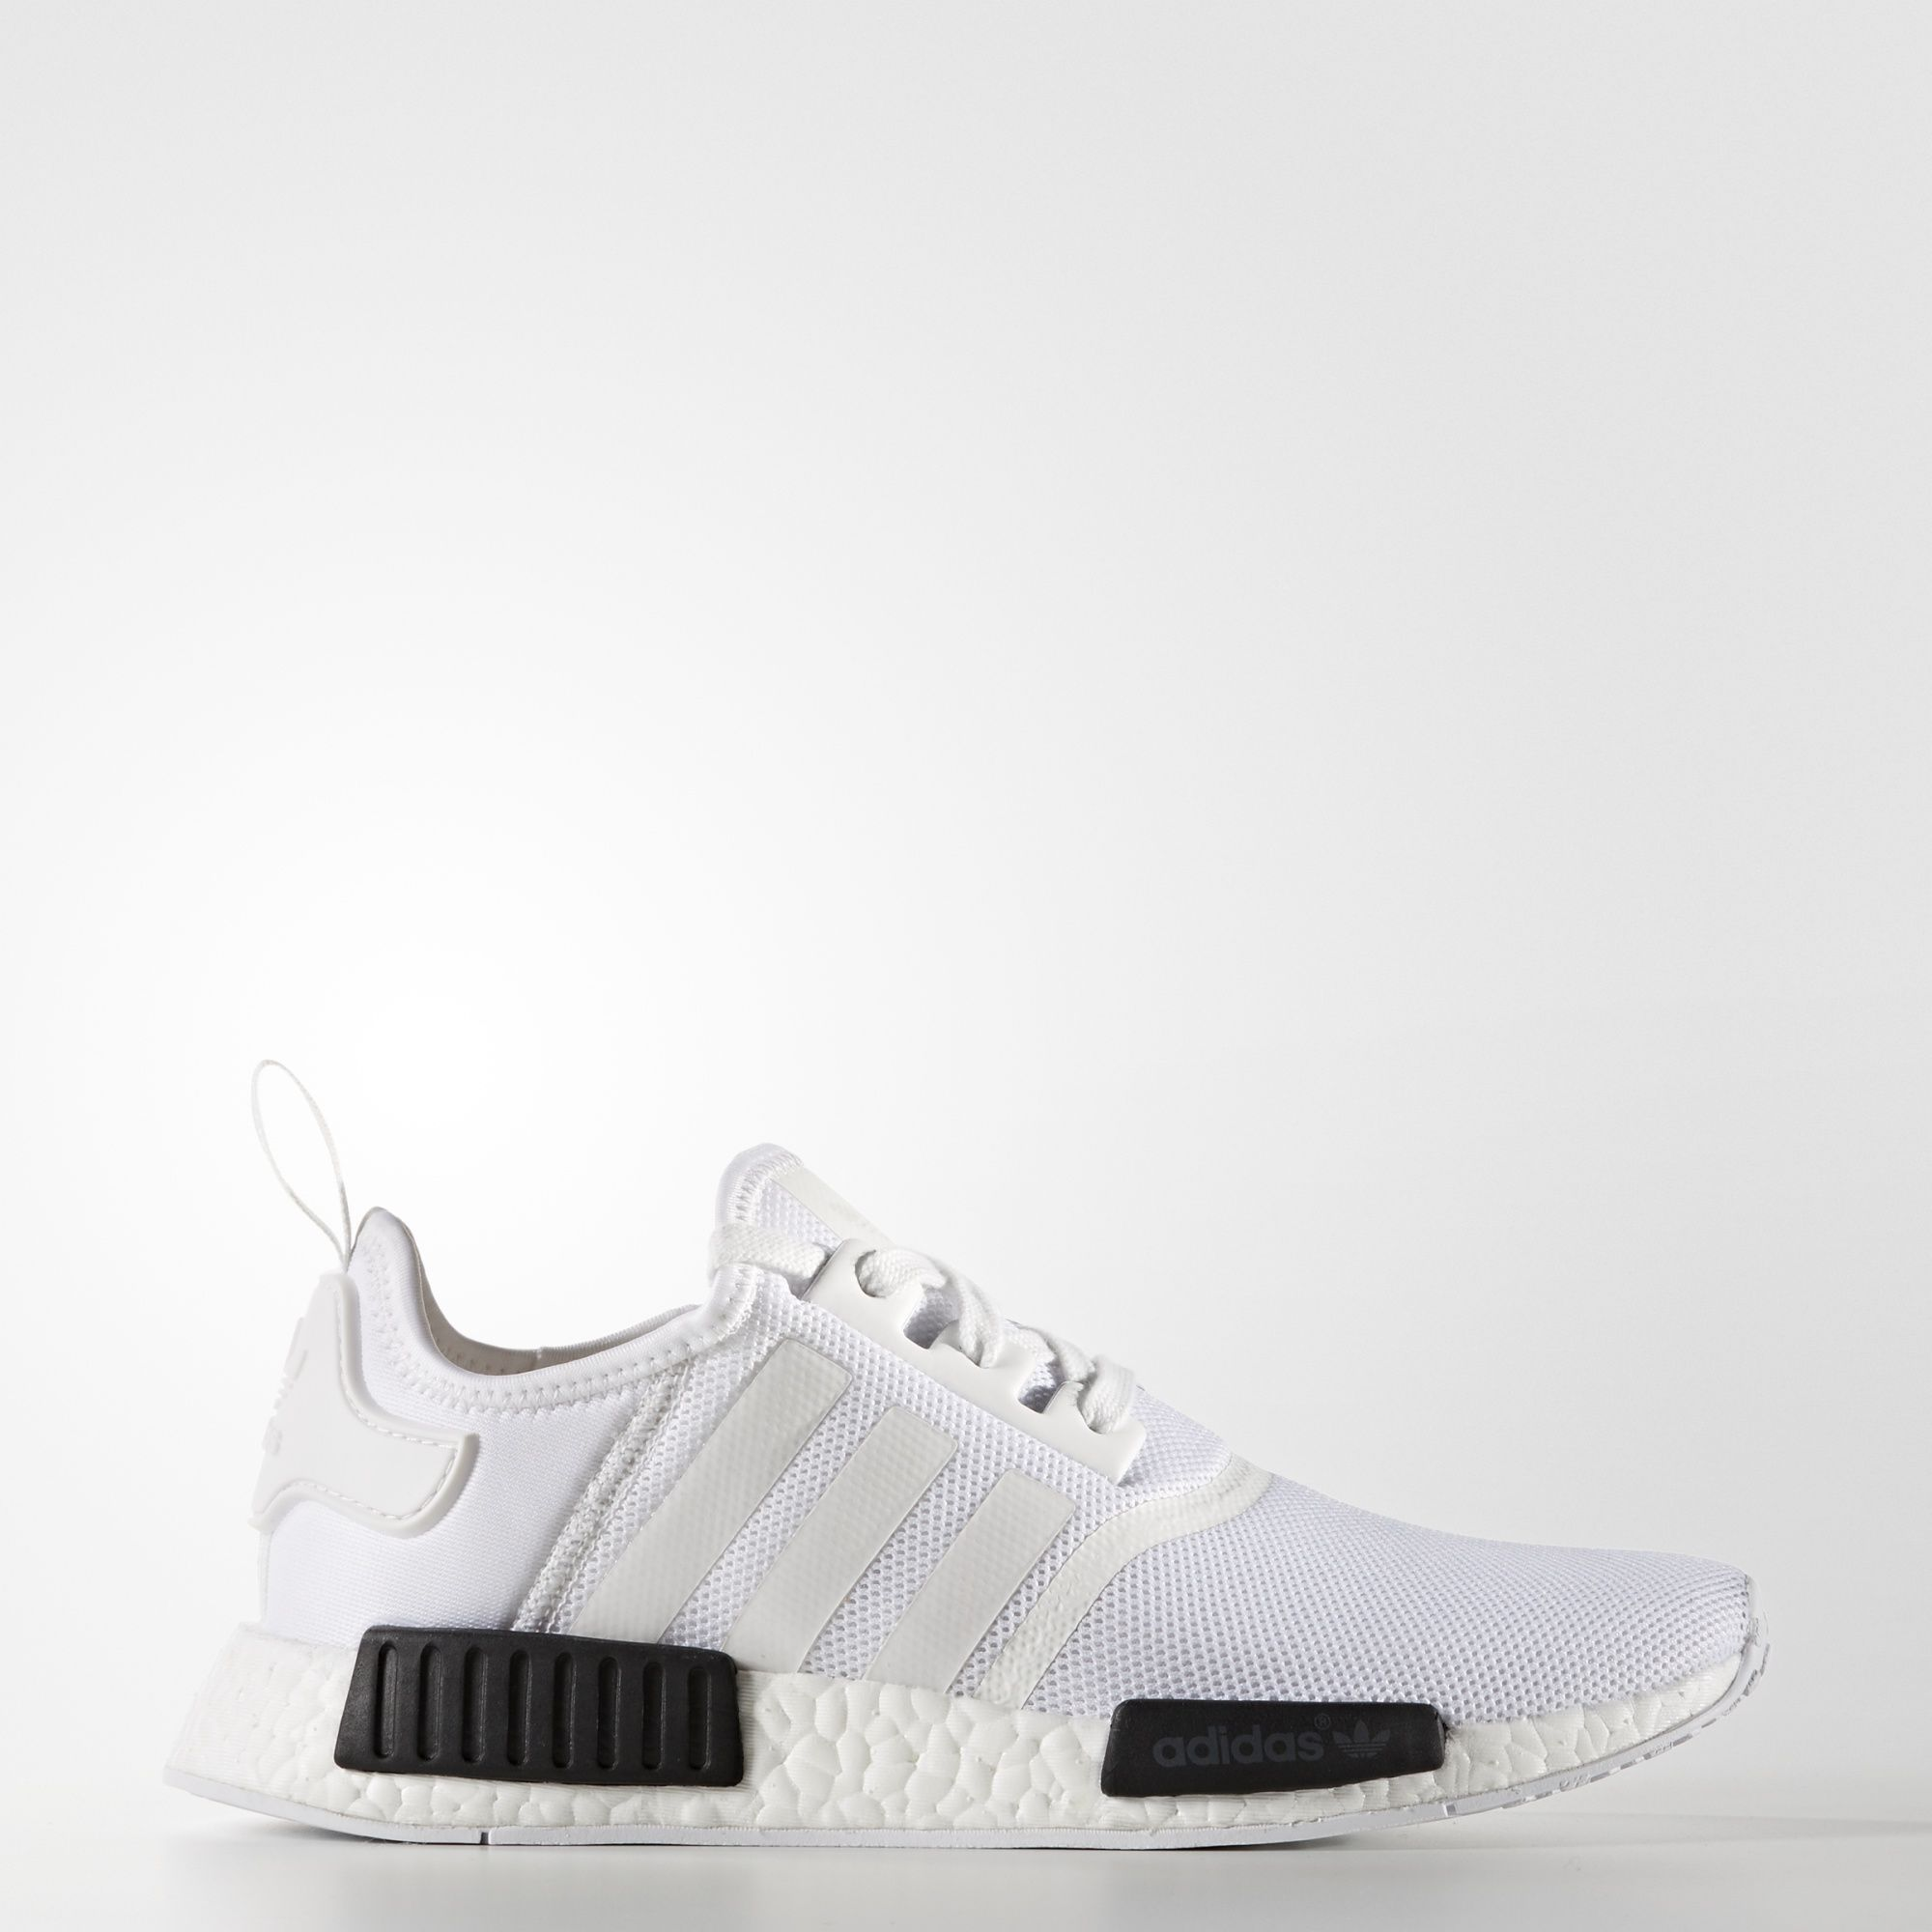 Adidas Chaussure NMD R1   Sneakers   Pinterest       Nmd r1, Nmd and 9986bc 64e942bb32